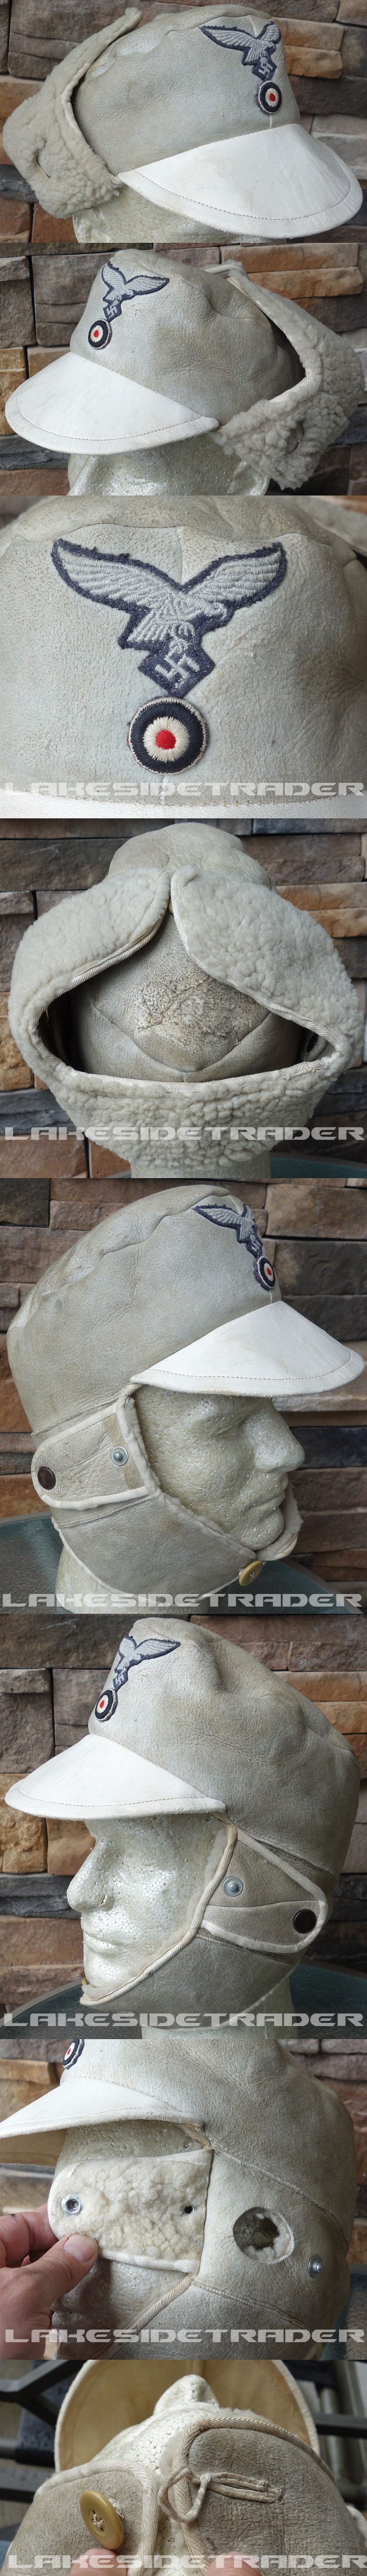 Luftwaffe Winter Fur Cap